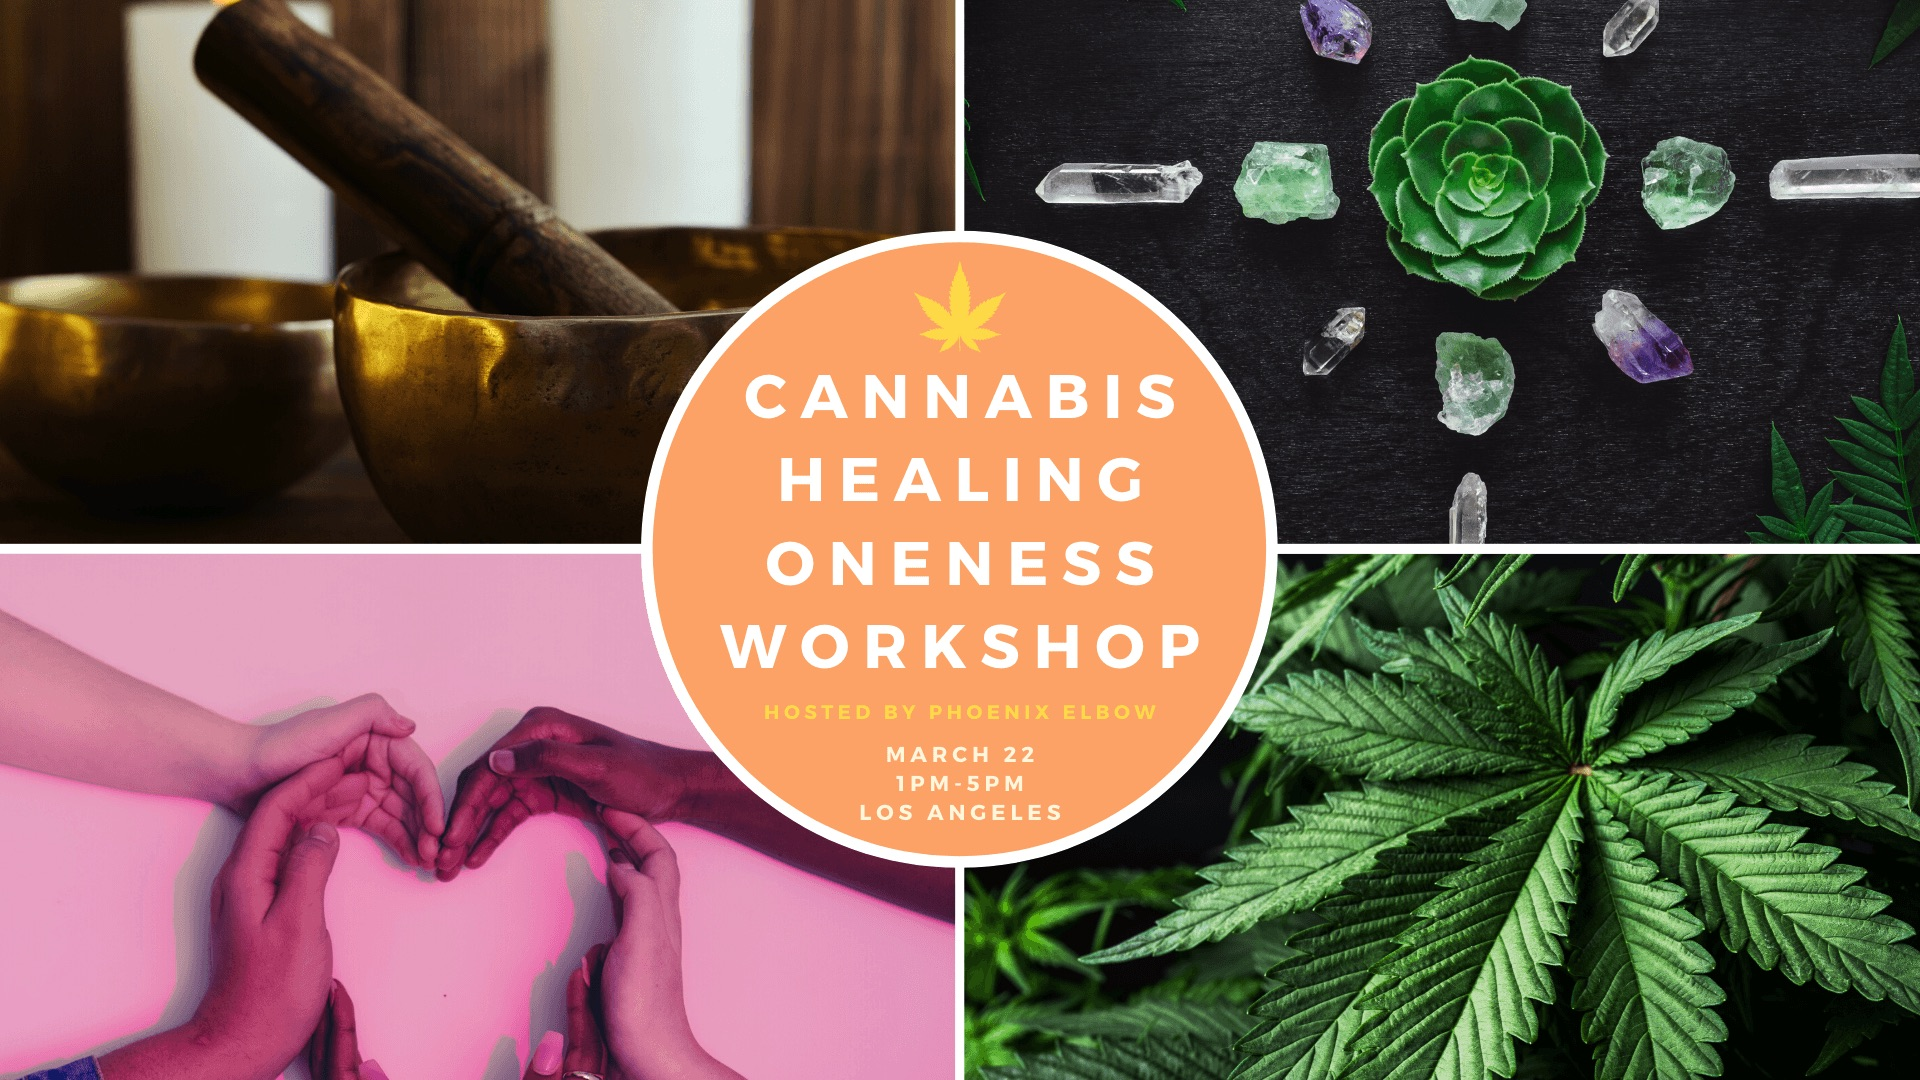 Cannabis Healing Oneness Workshop